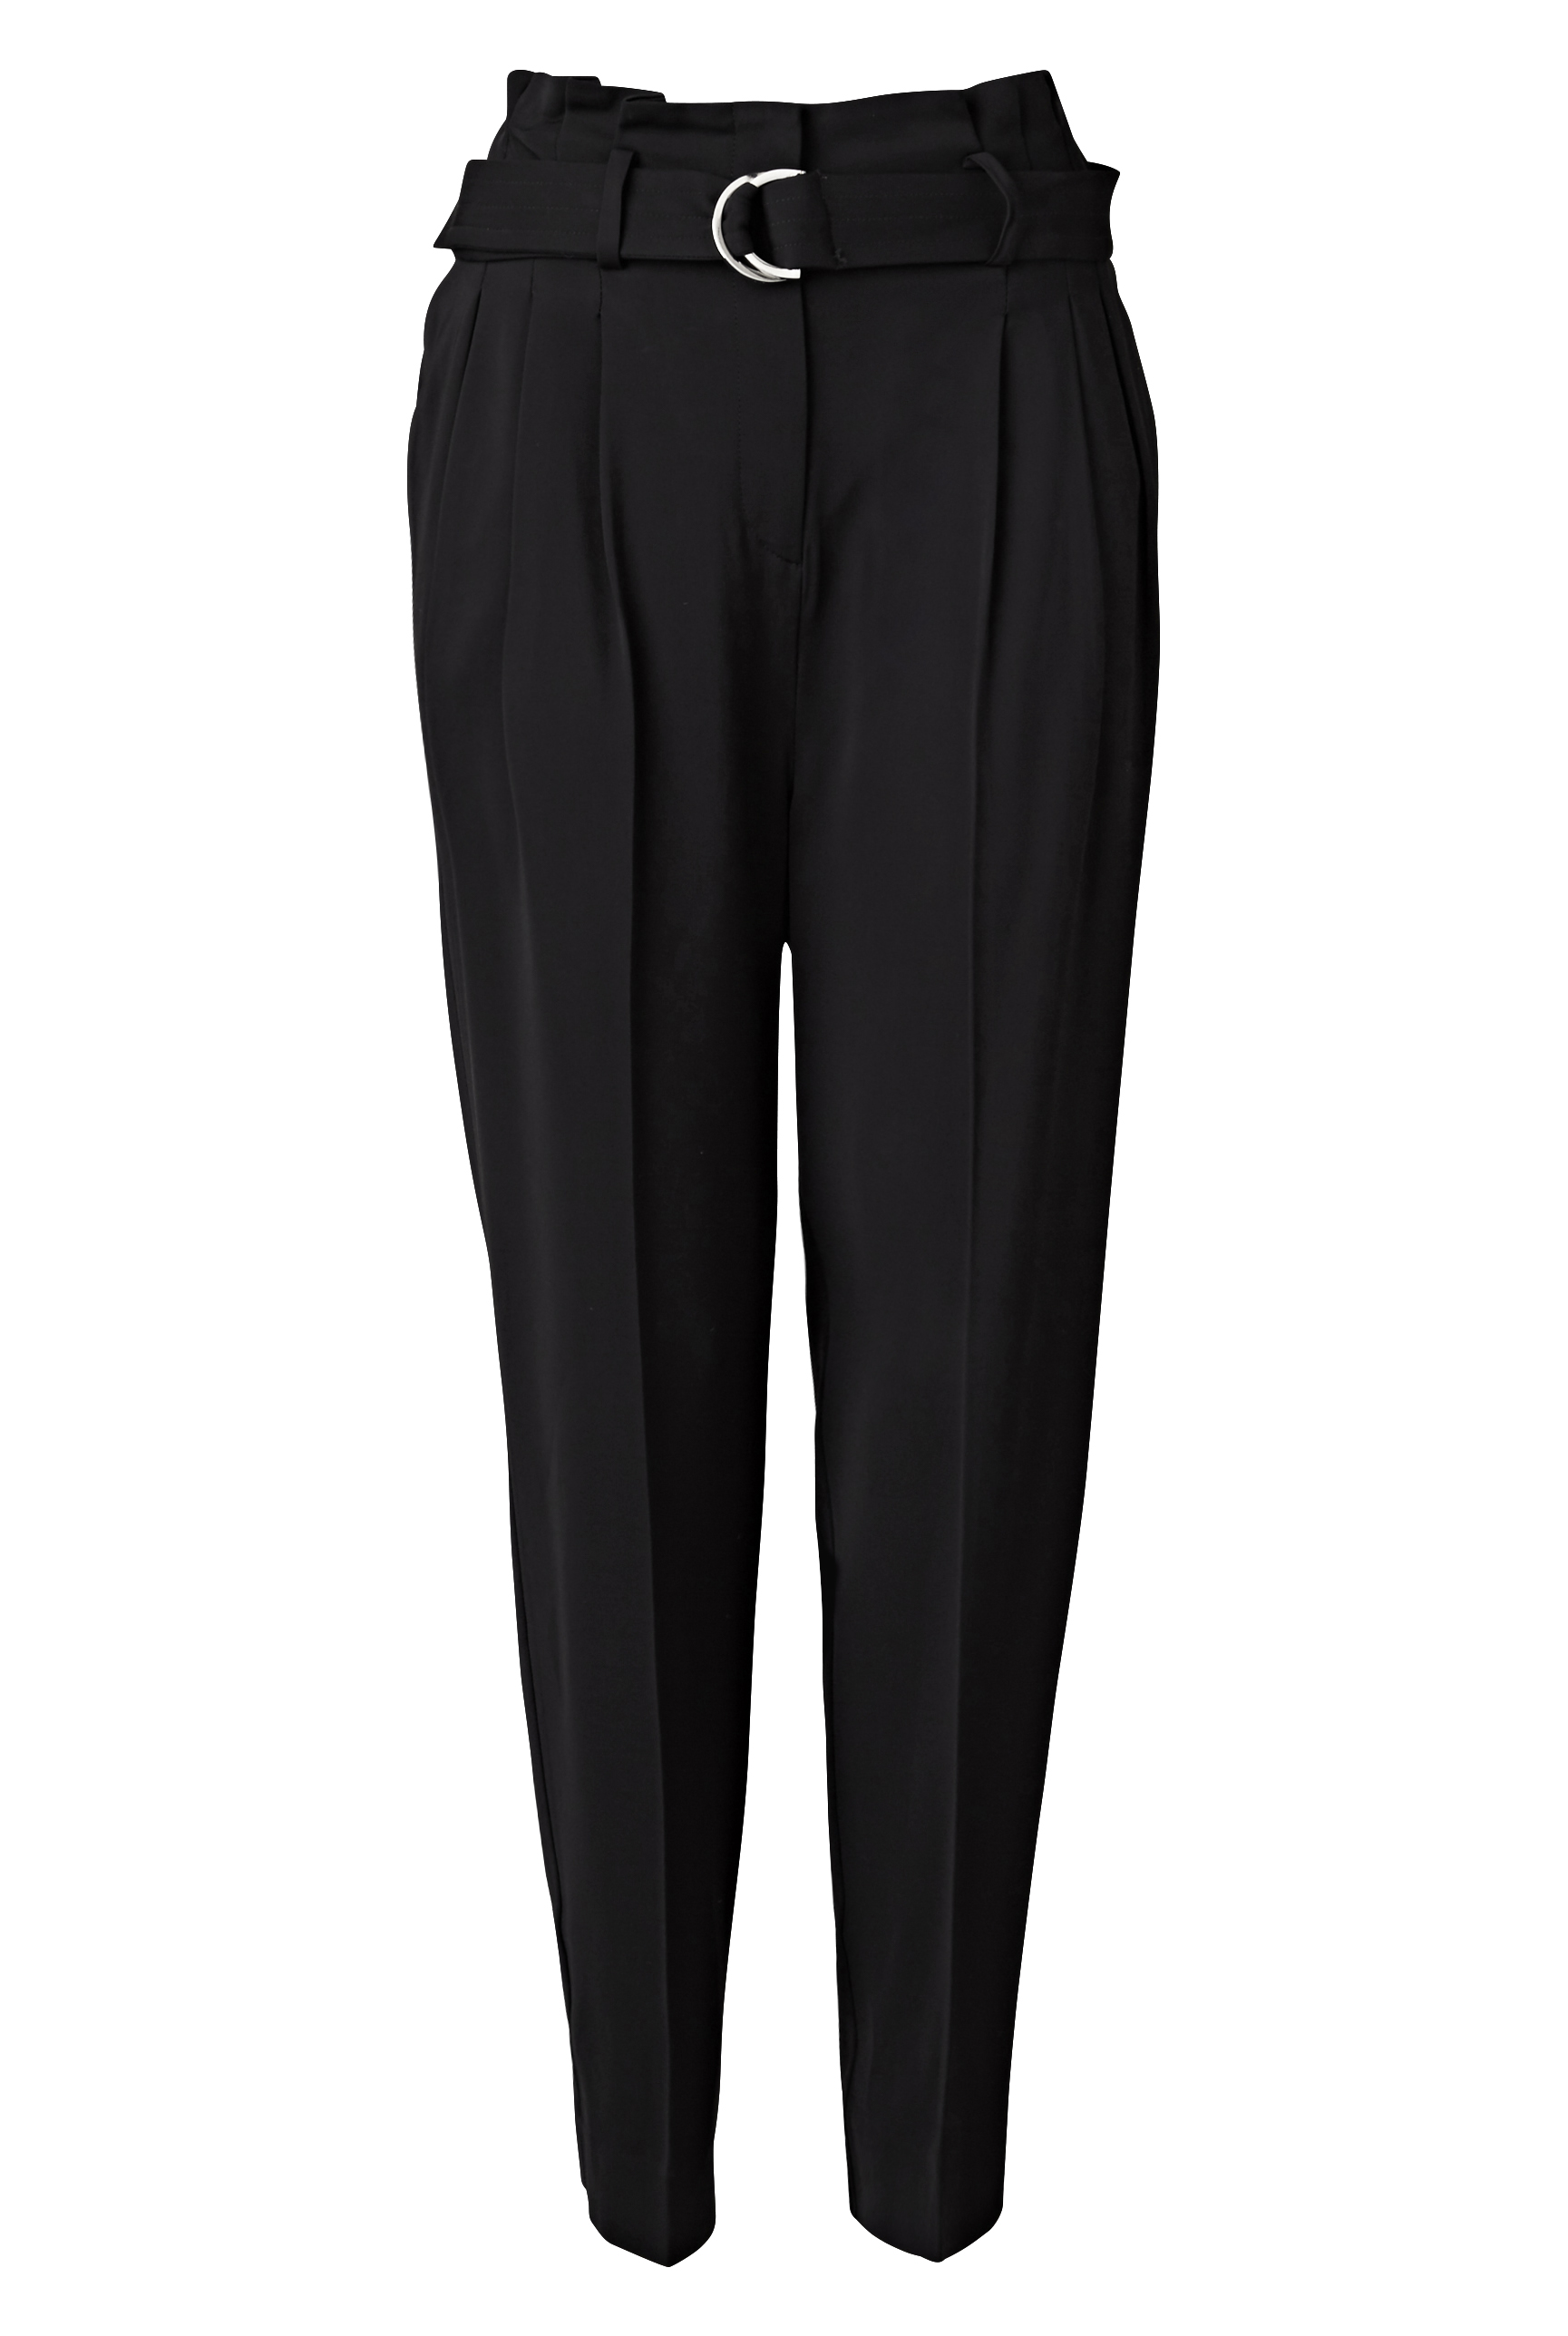 60193688_Witchery Paper Bag Pant, RRP$199.90